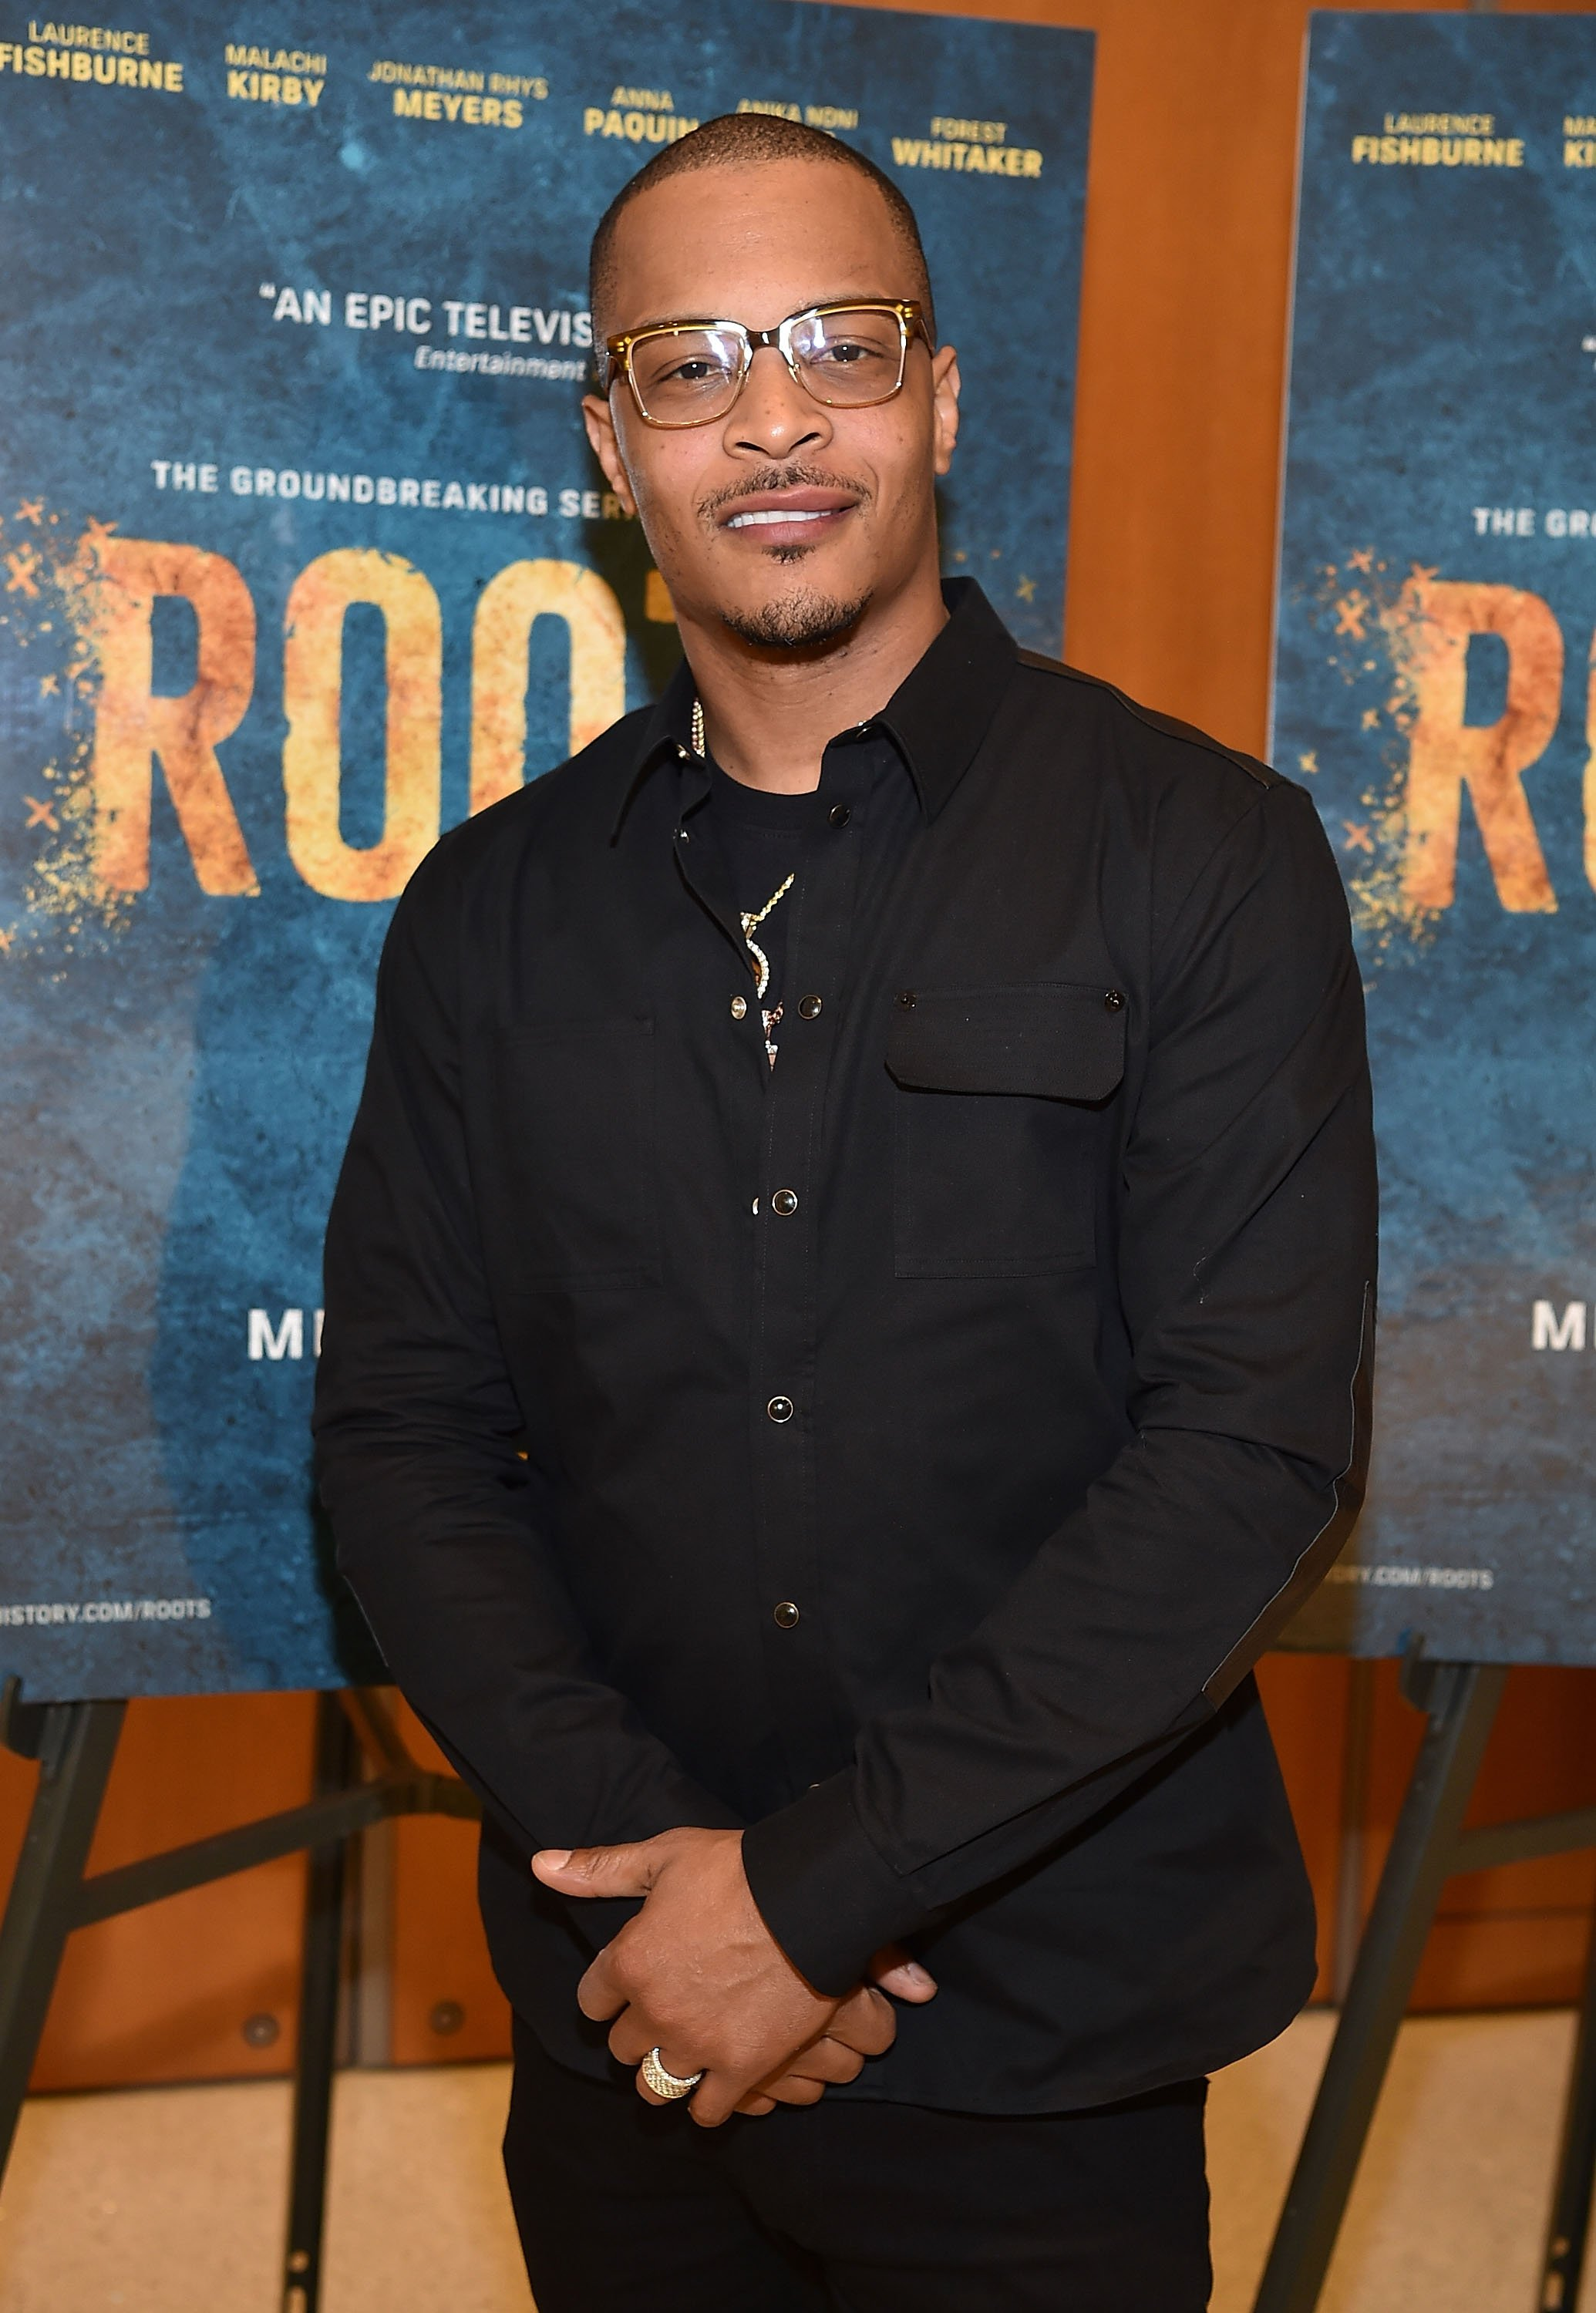 """""""ATLANTA, GA - MAY 09: (EXCLUSIVE COVERAGE) Actor/rapper Tip """"T.I."""" Harris attends HISTORY's """"Roots"""" Atlanta advanced screening at National Center for Civil and Human Rights on May 9, 2016 in Atlanta, Georgia. (Photo by Paras Griffin/Getty Images for History/Roots)"""""""